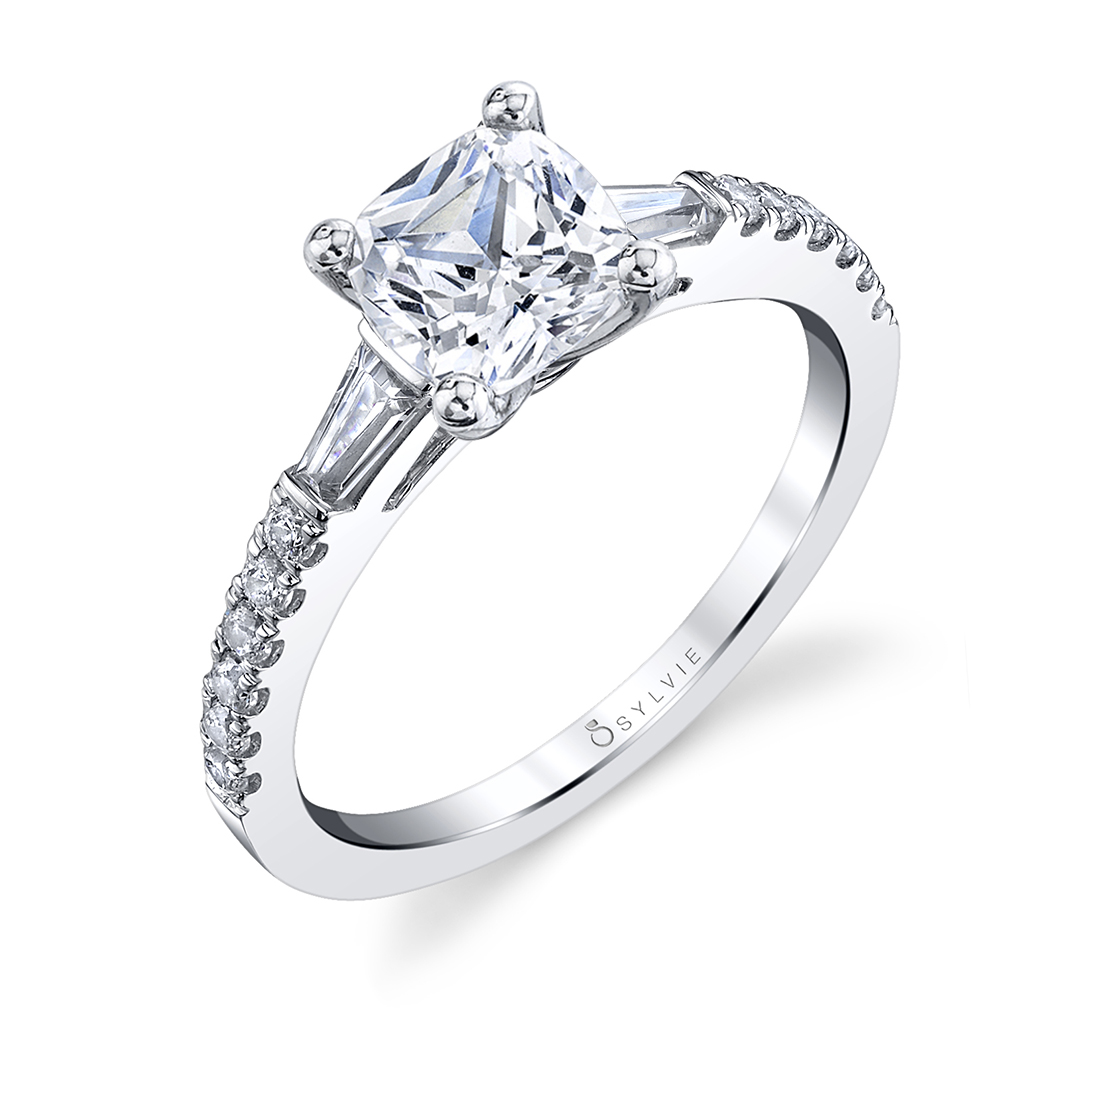 Cushion Cut Engagement Ring with Baguettes